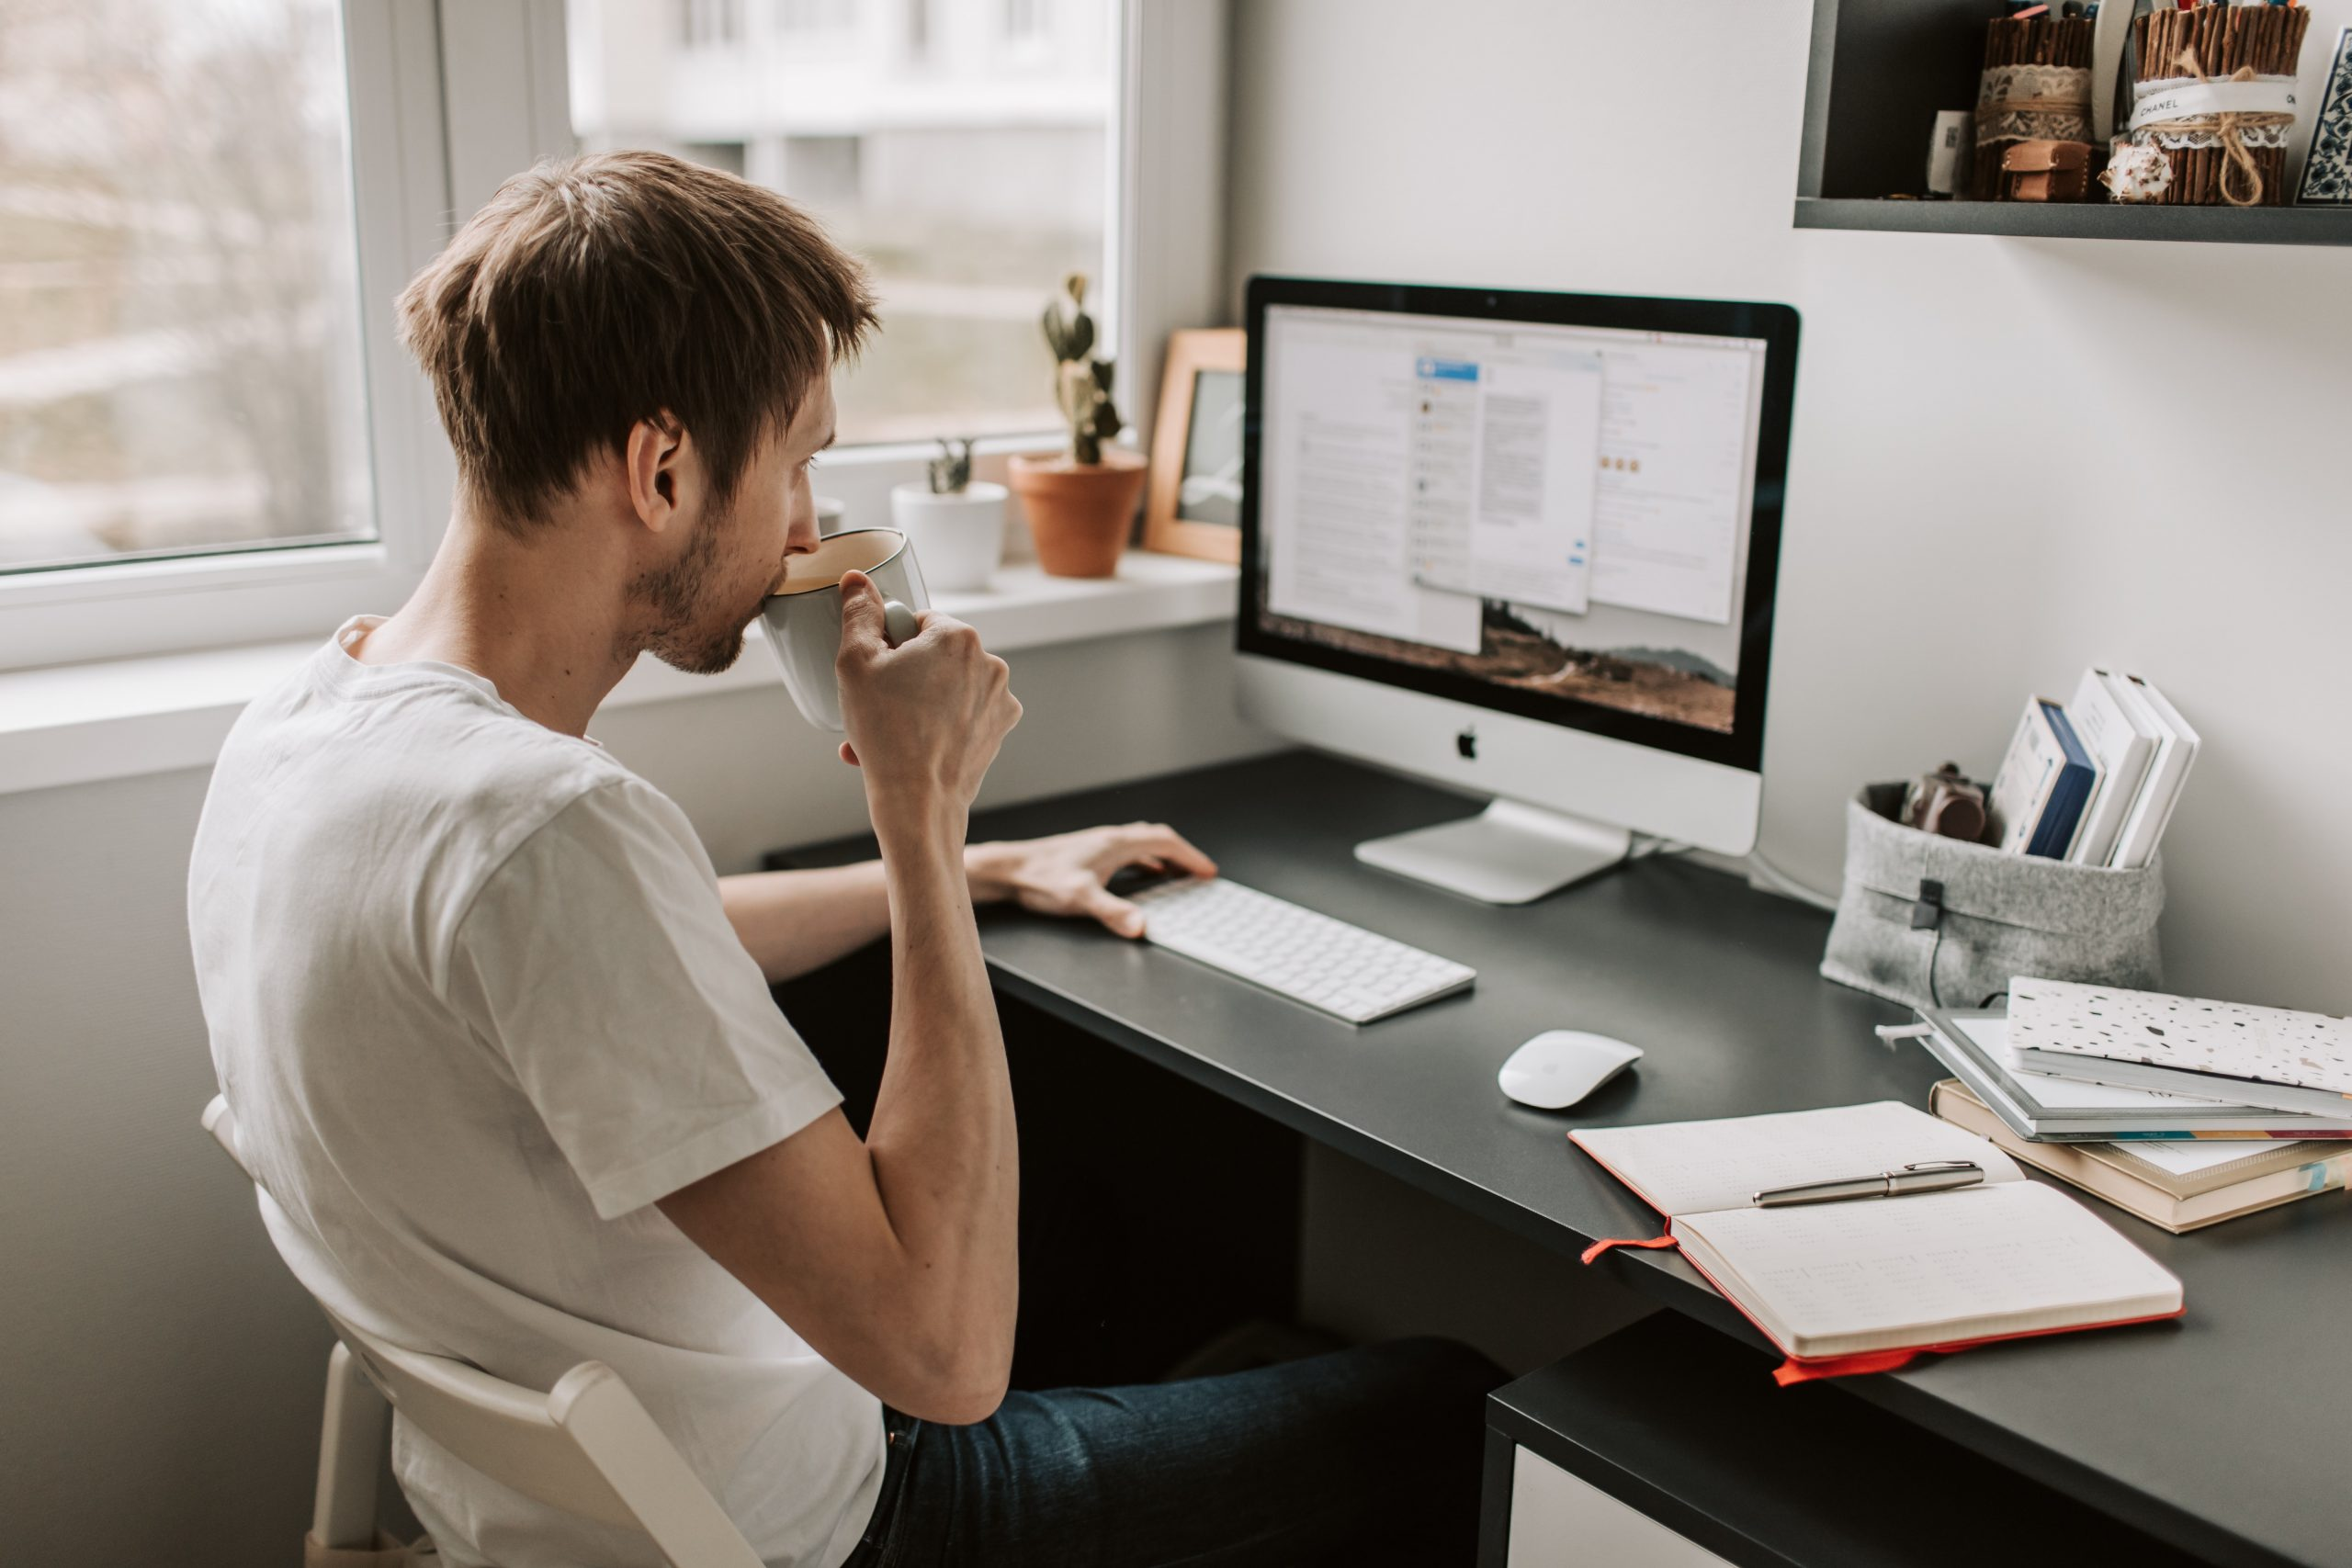 Man at computer sipping coffee